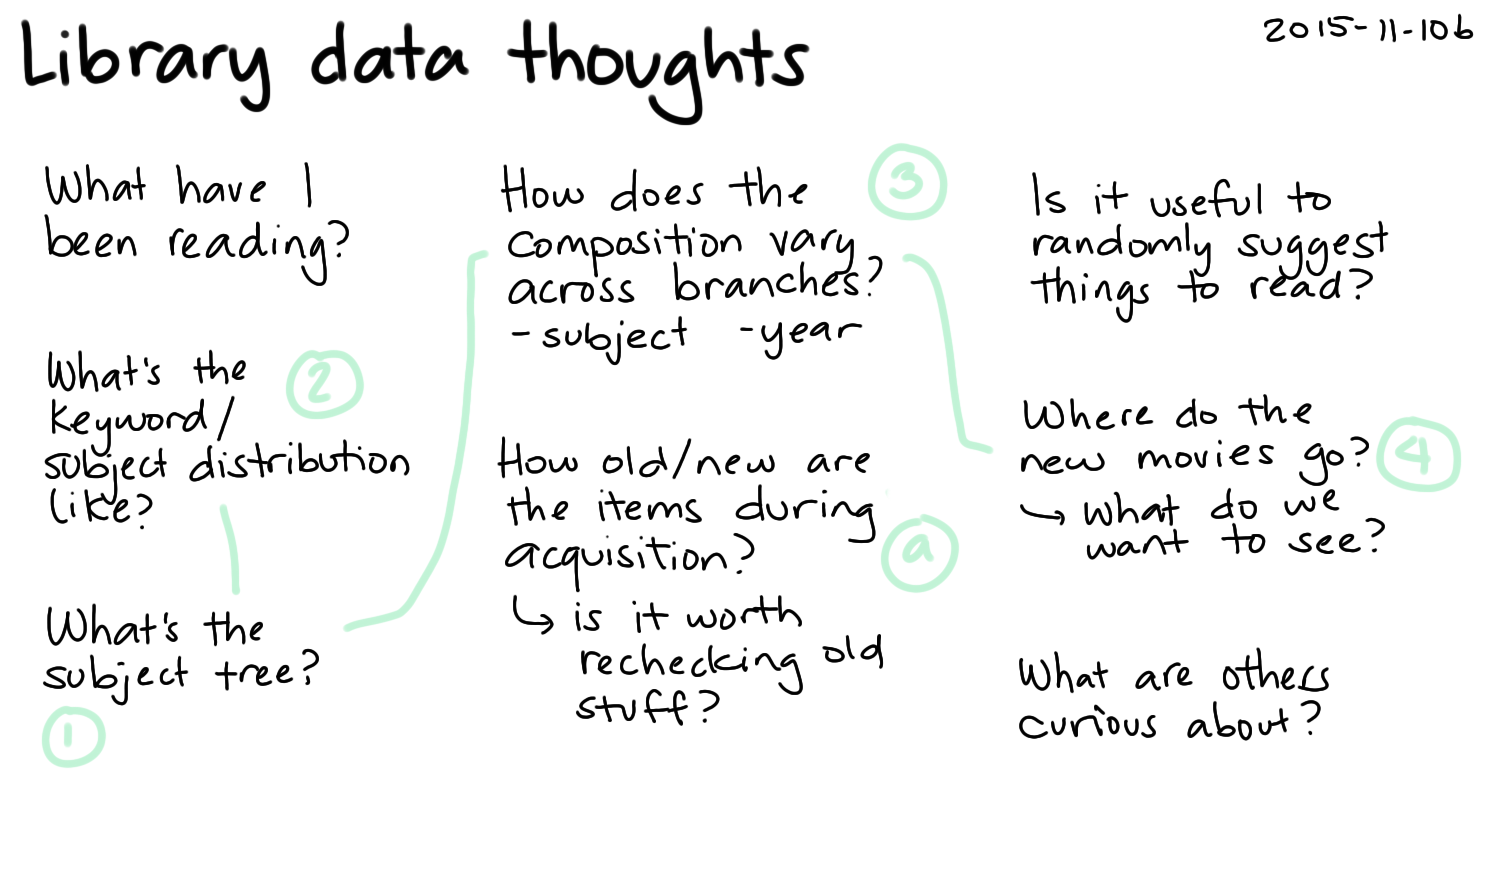 2015-11-10b Library data thoughts -- index card #library #analysis #quantified #data #ideas.png